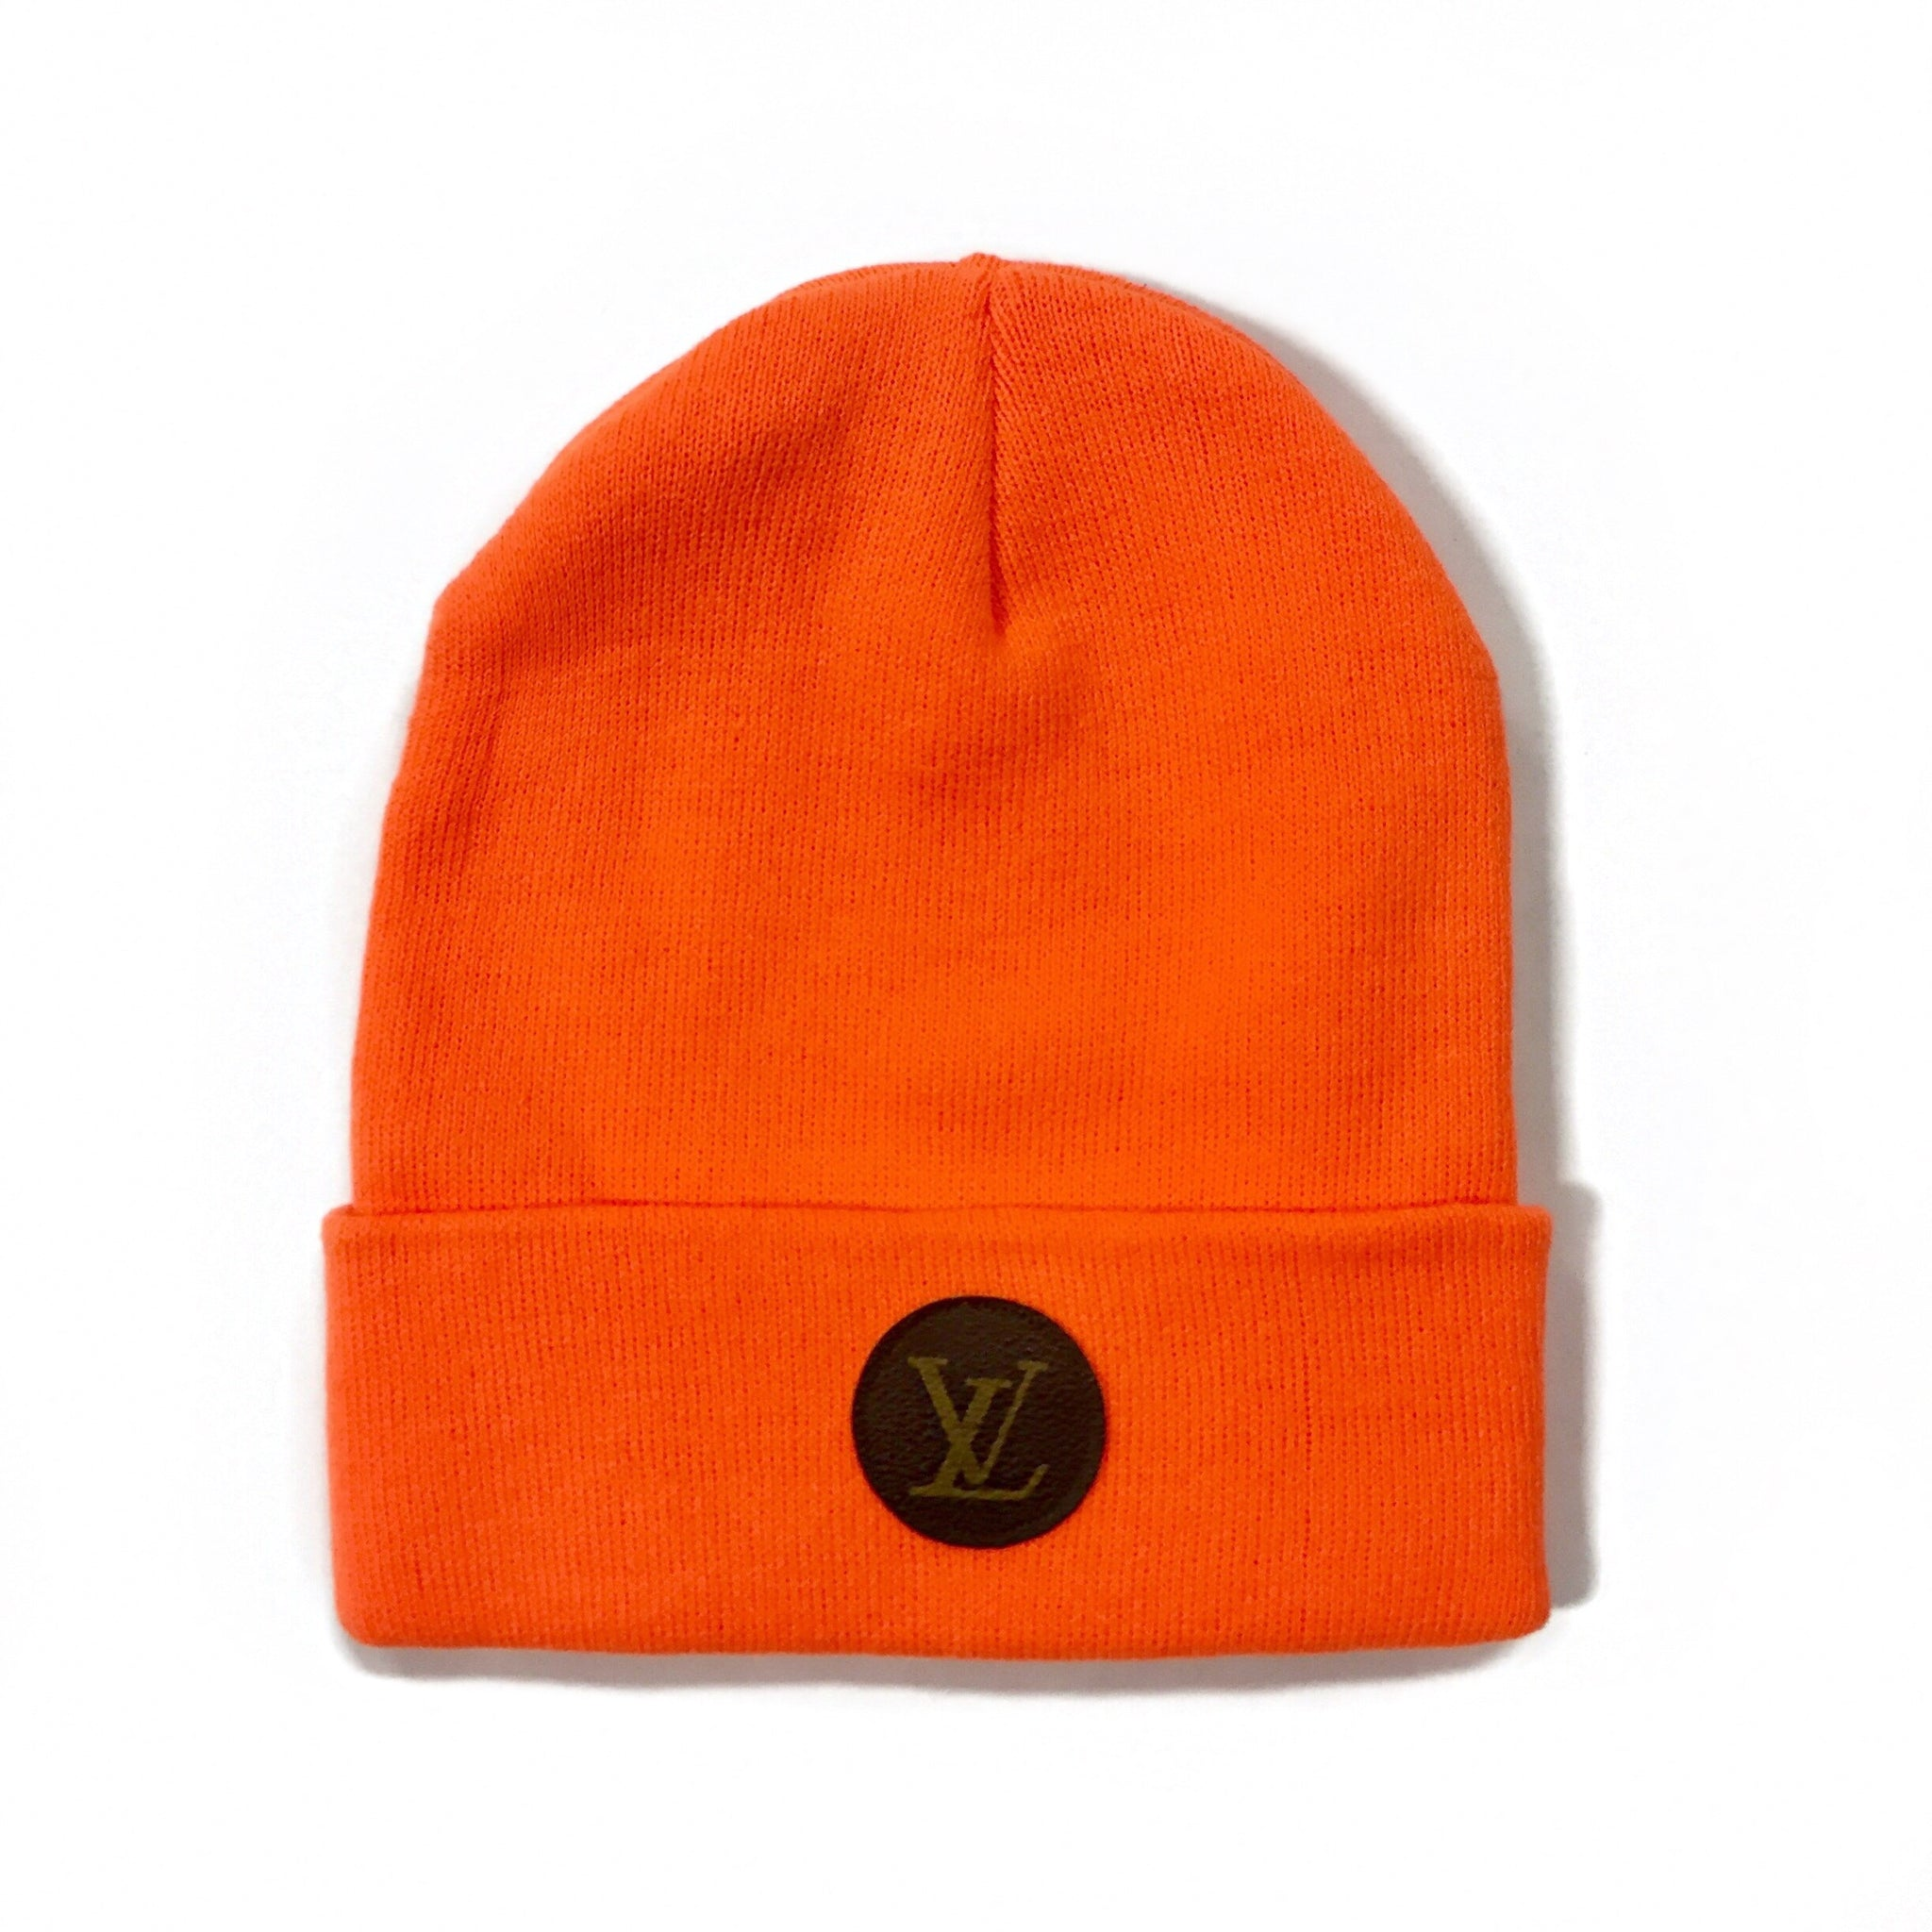 UPCYCLE LV NEON ORANGE BEANIE